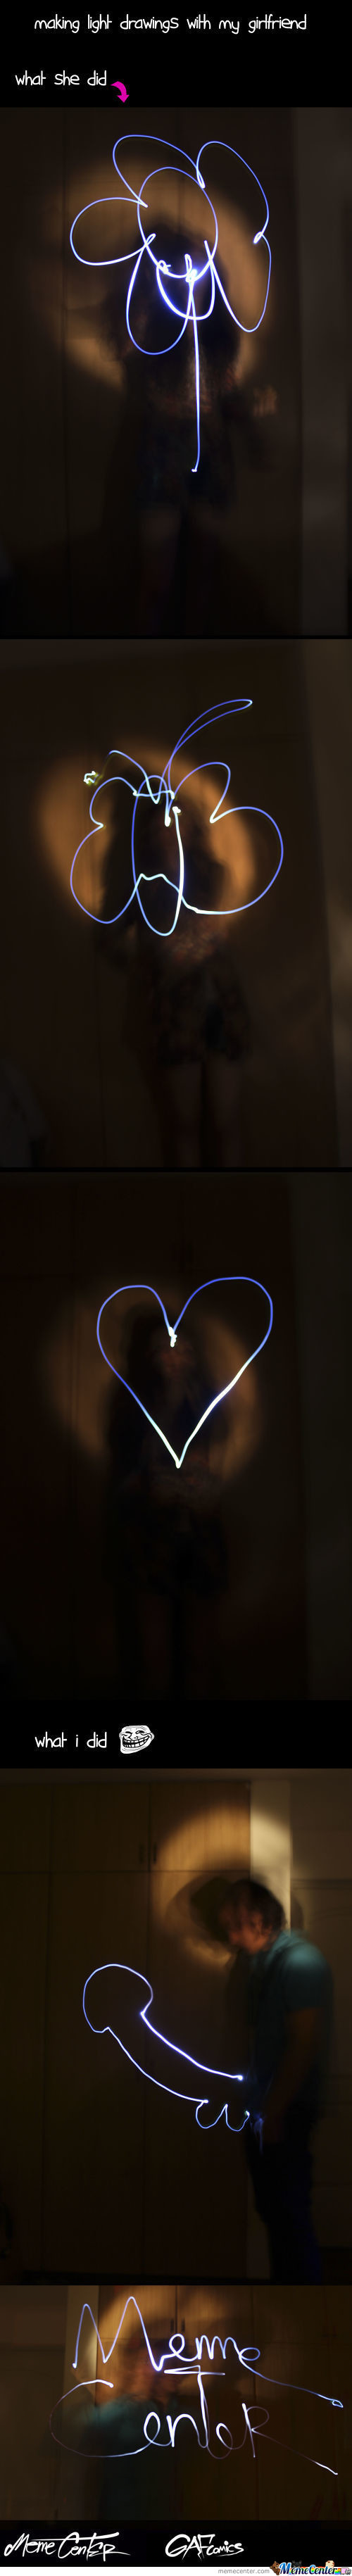 Light Drawings